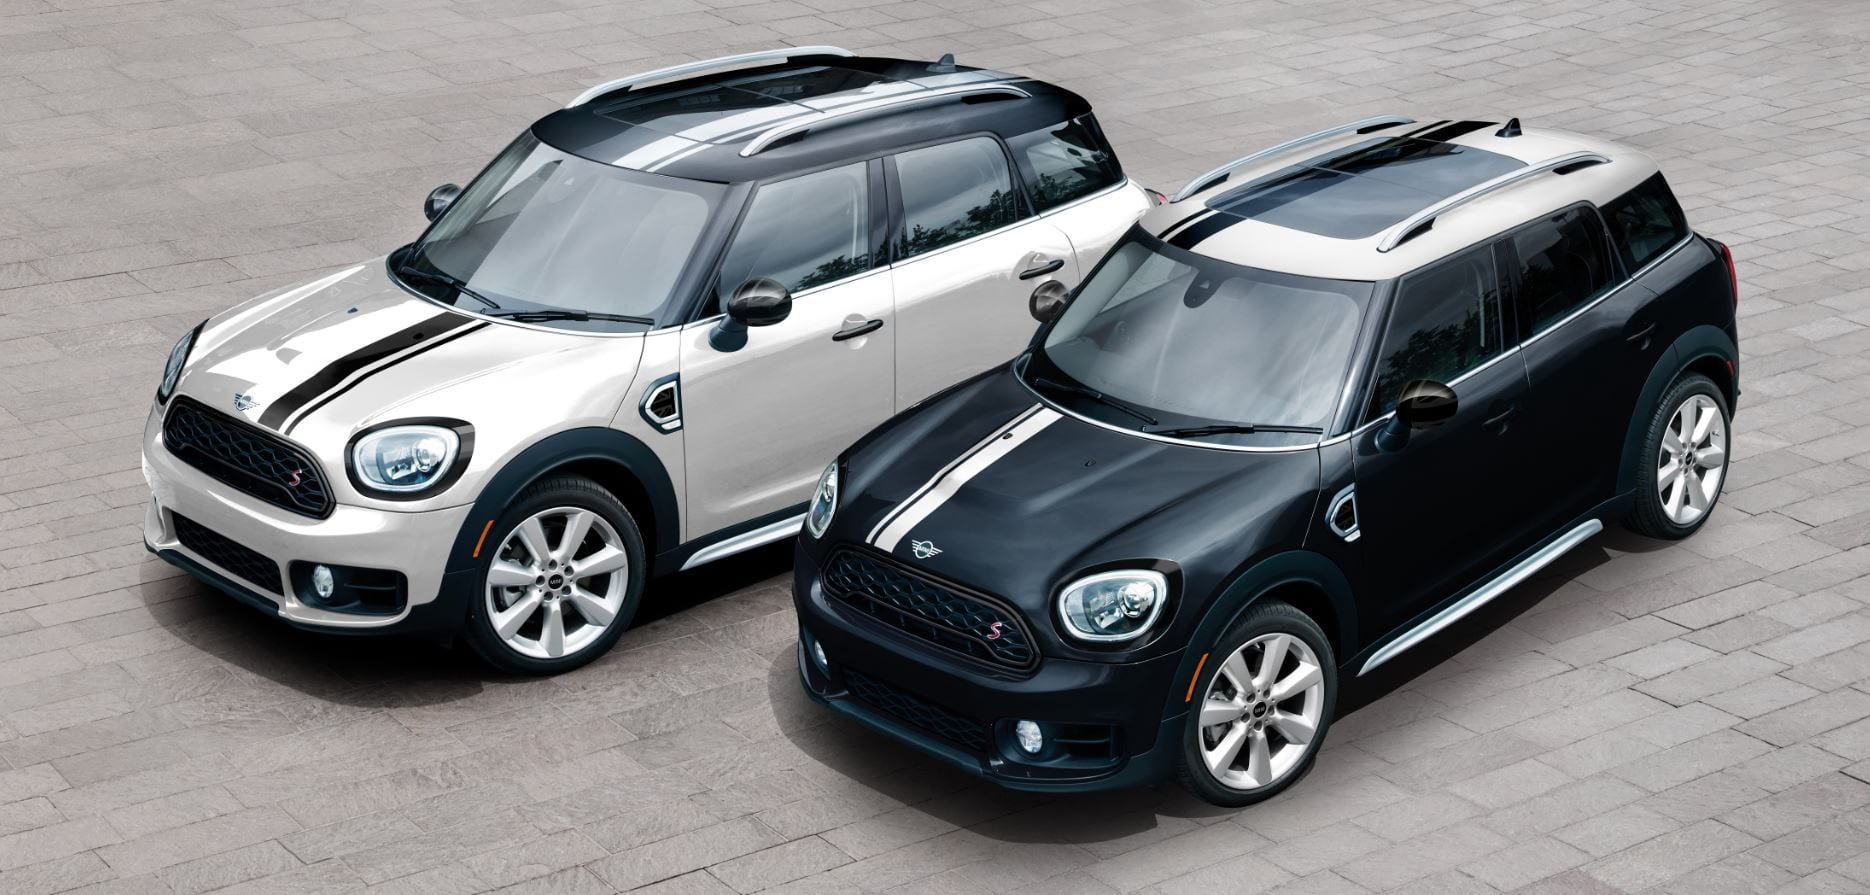 2019 MINI Countryman Yin Yang Editions